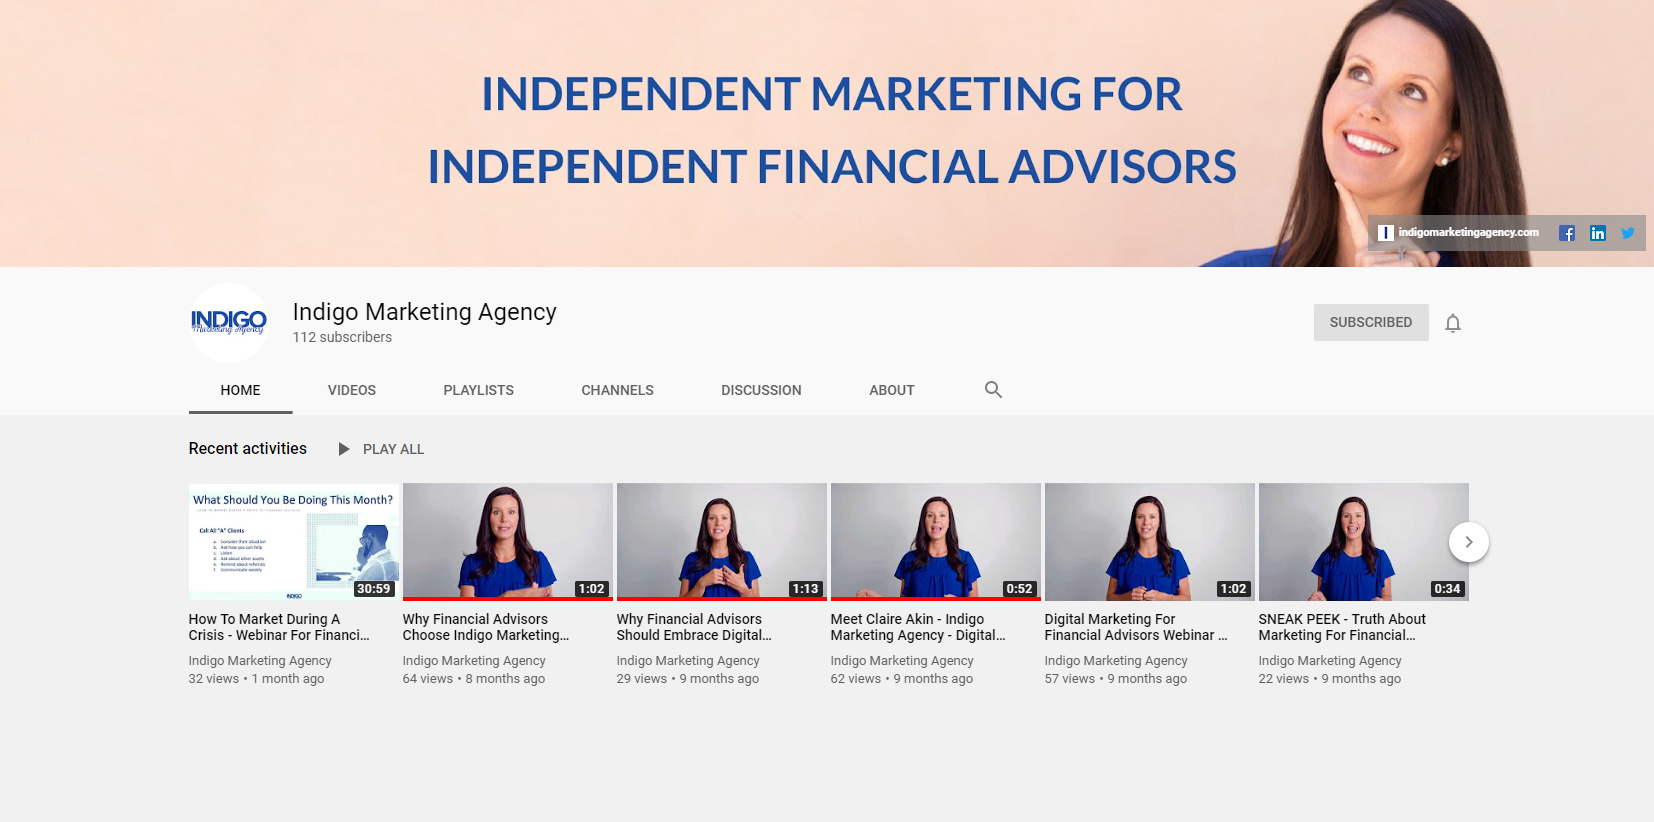 Independent Marketing for Independent Financial Advisors